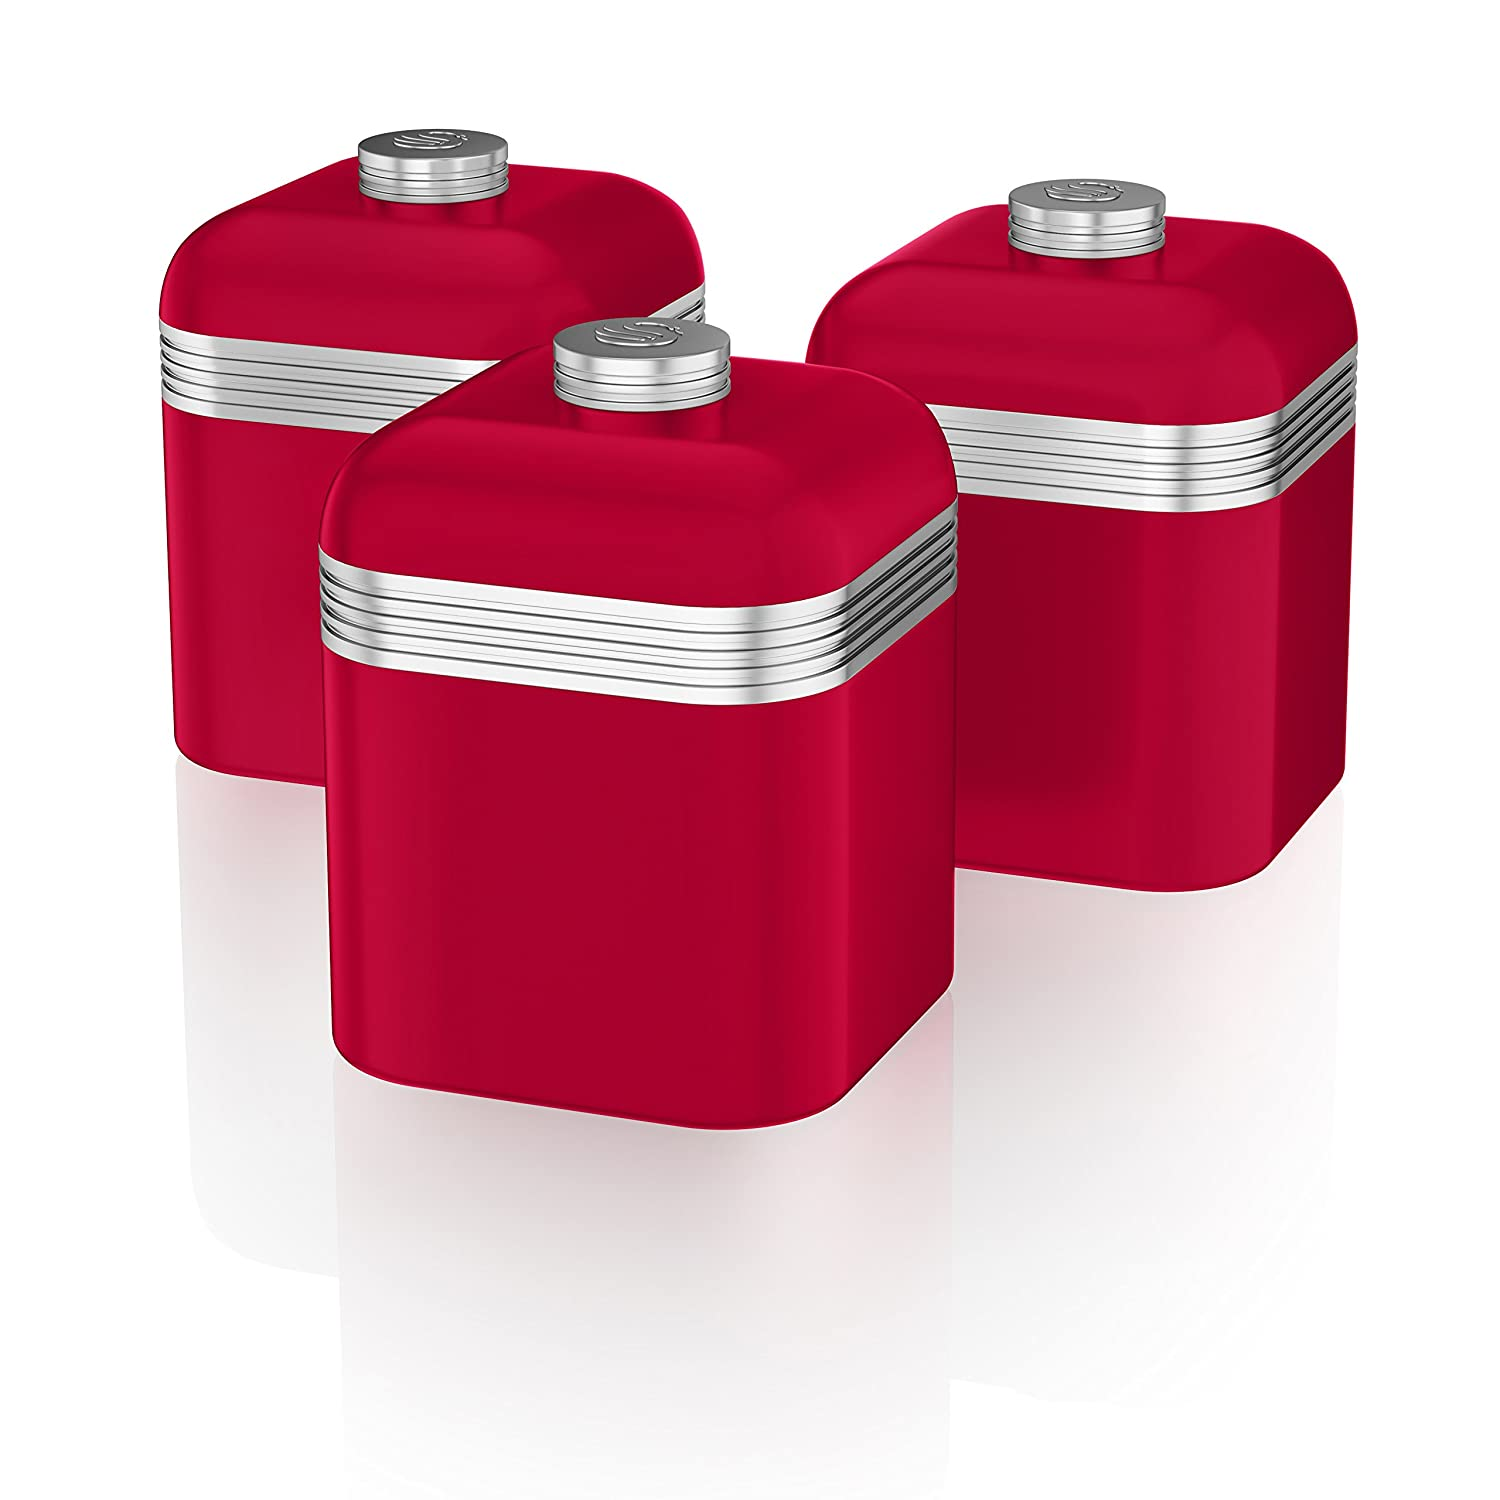 Red vintage kitchen accessories - Swan Kitchen Accessories Retro Set Retro Red Bread Bin Breadbin